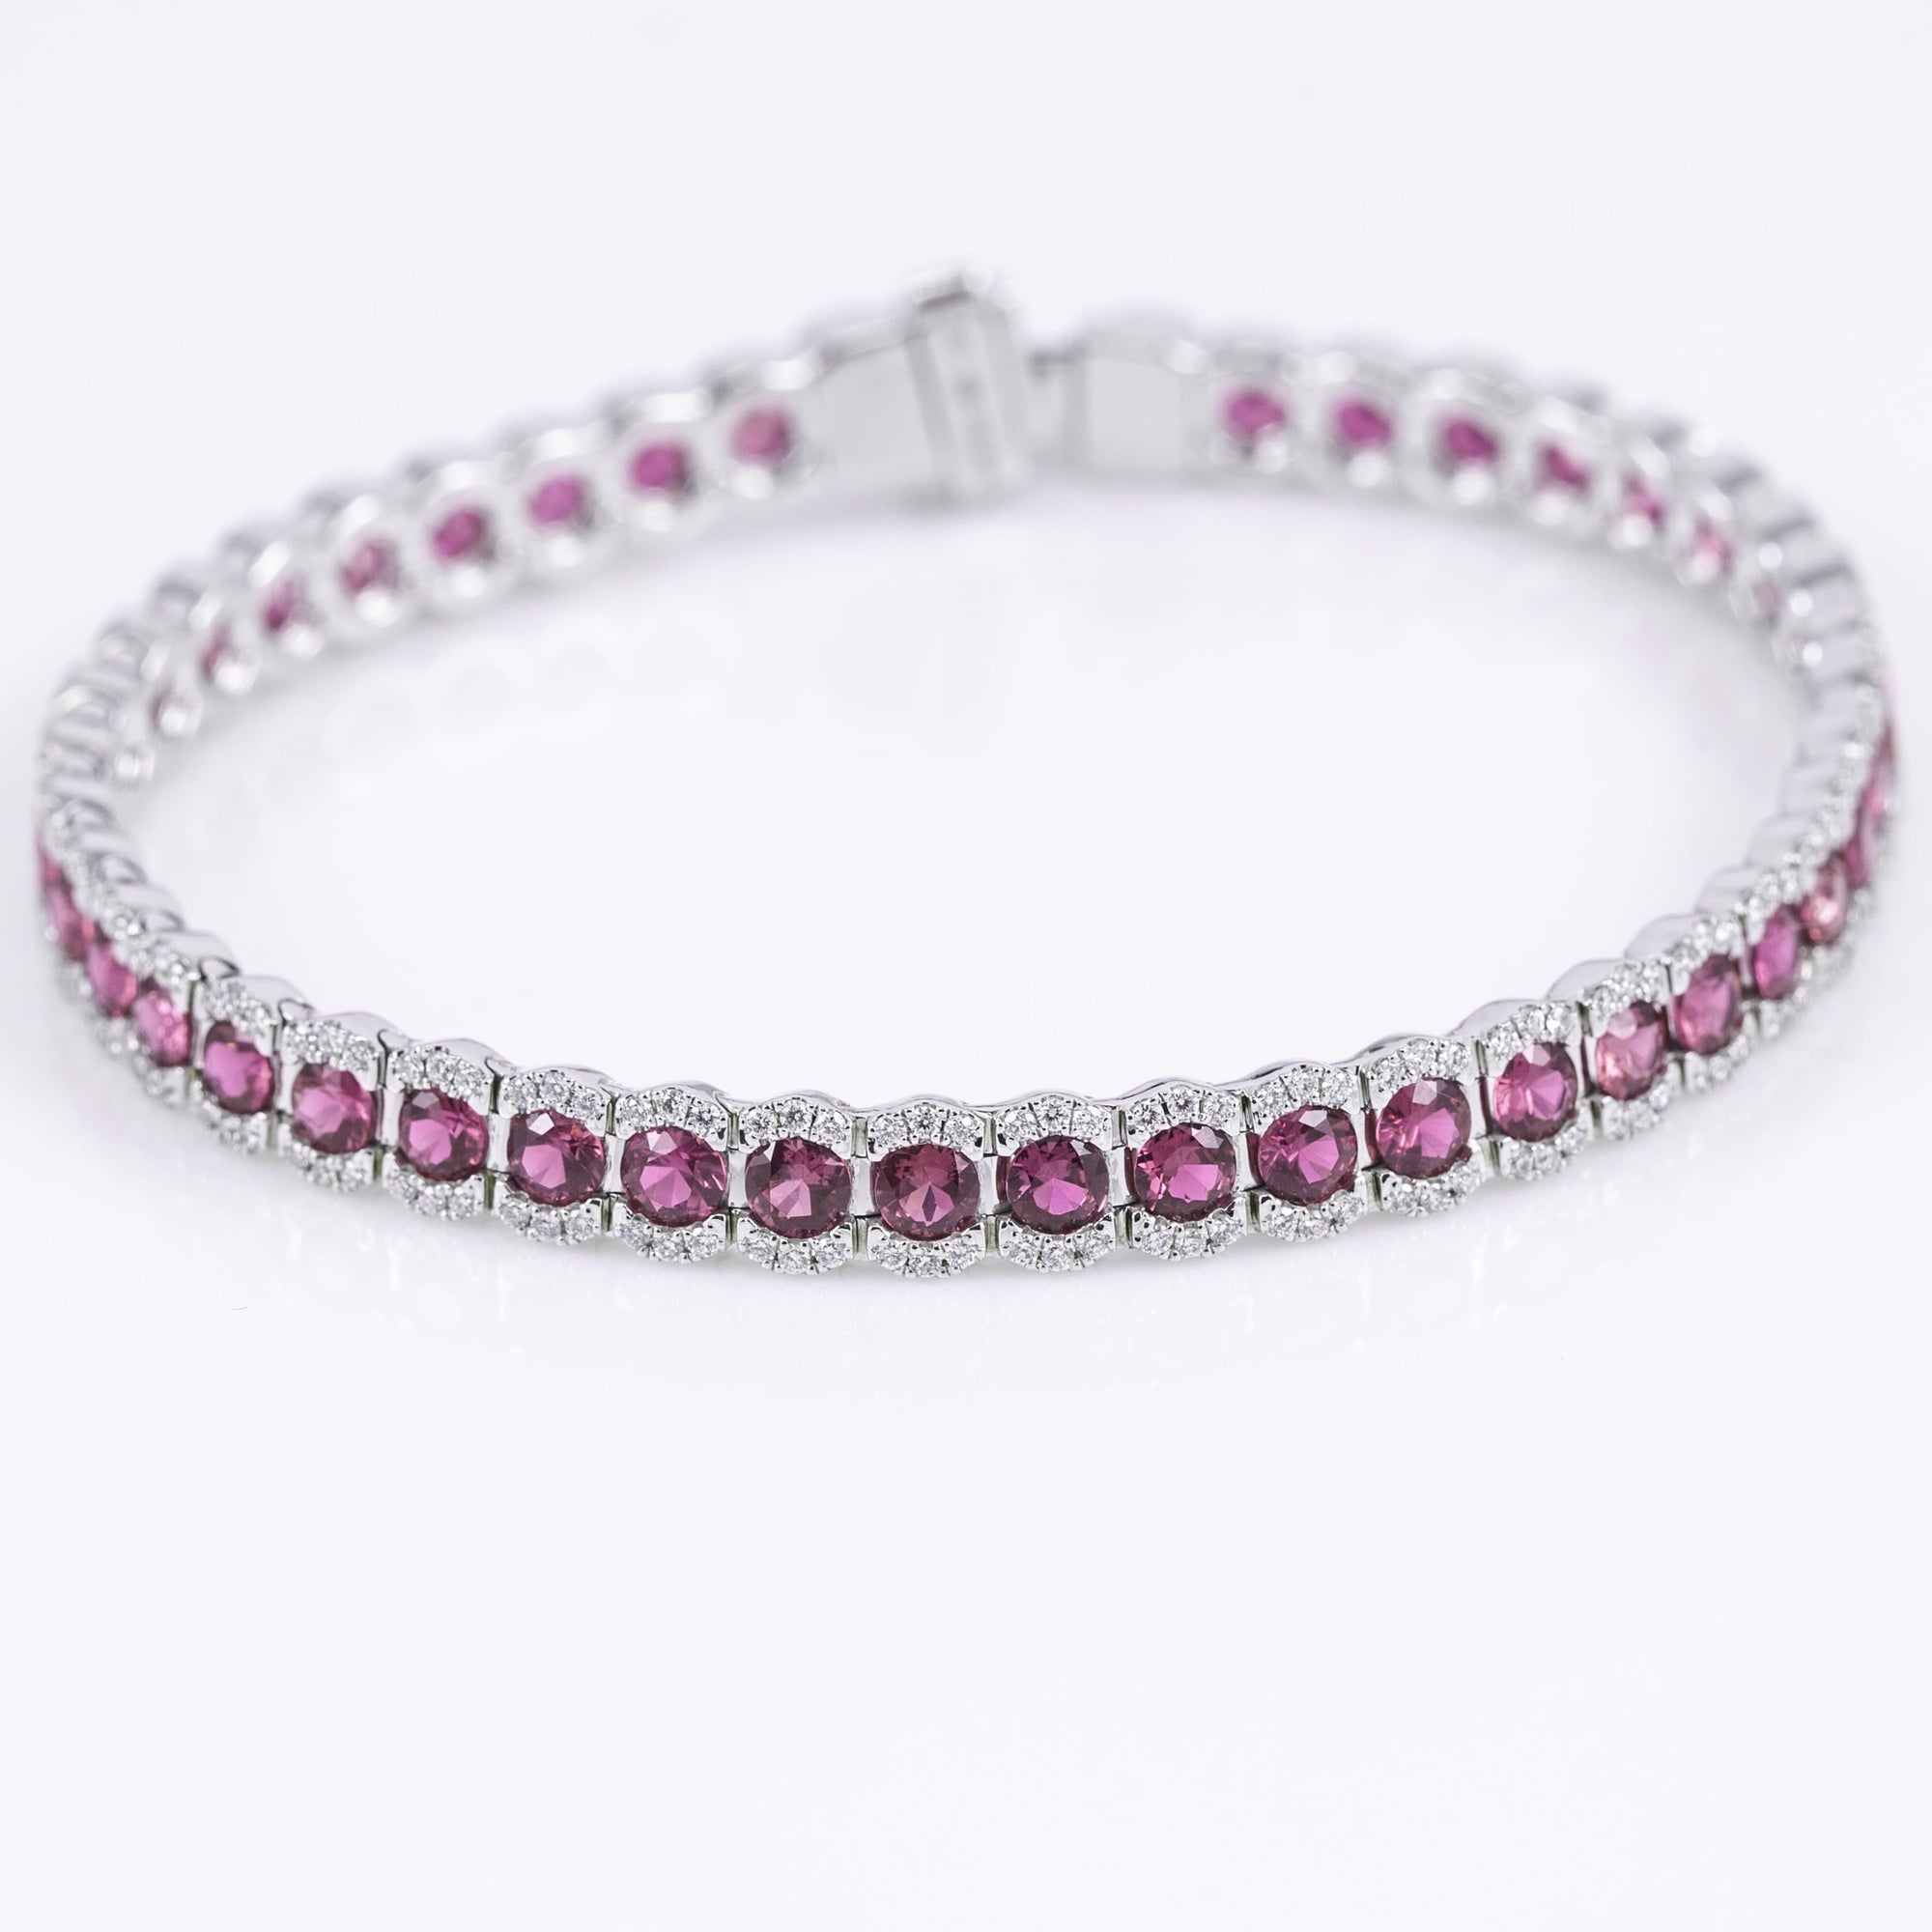 14k White Gold Pink Sapphire and Diamond Bracelet (7in)